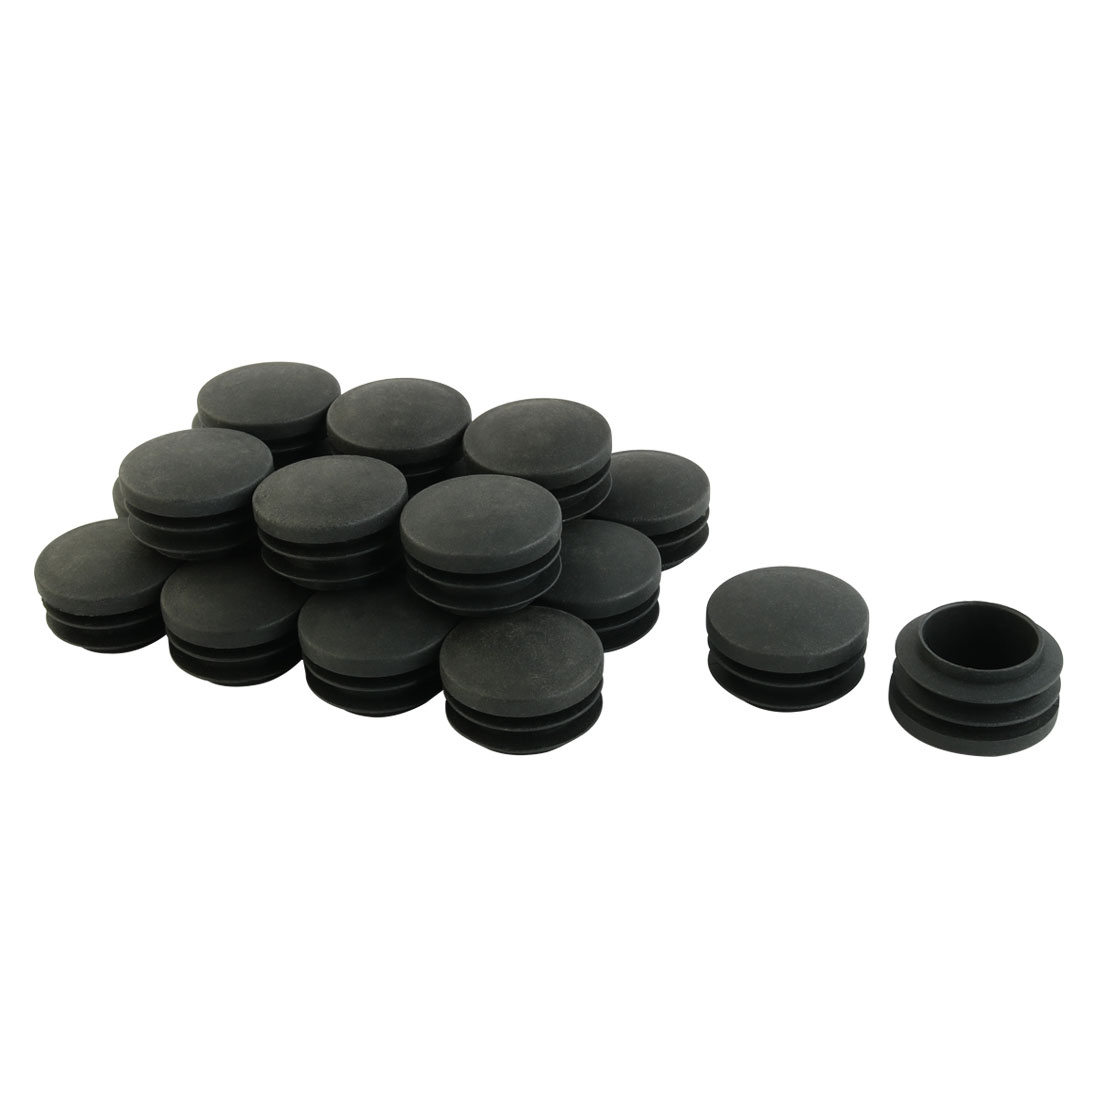 Furniture Table Chair Plastic Round Tube Insert Tubing Cap Pipe Cover Black 35mm Dia 20pcs